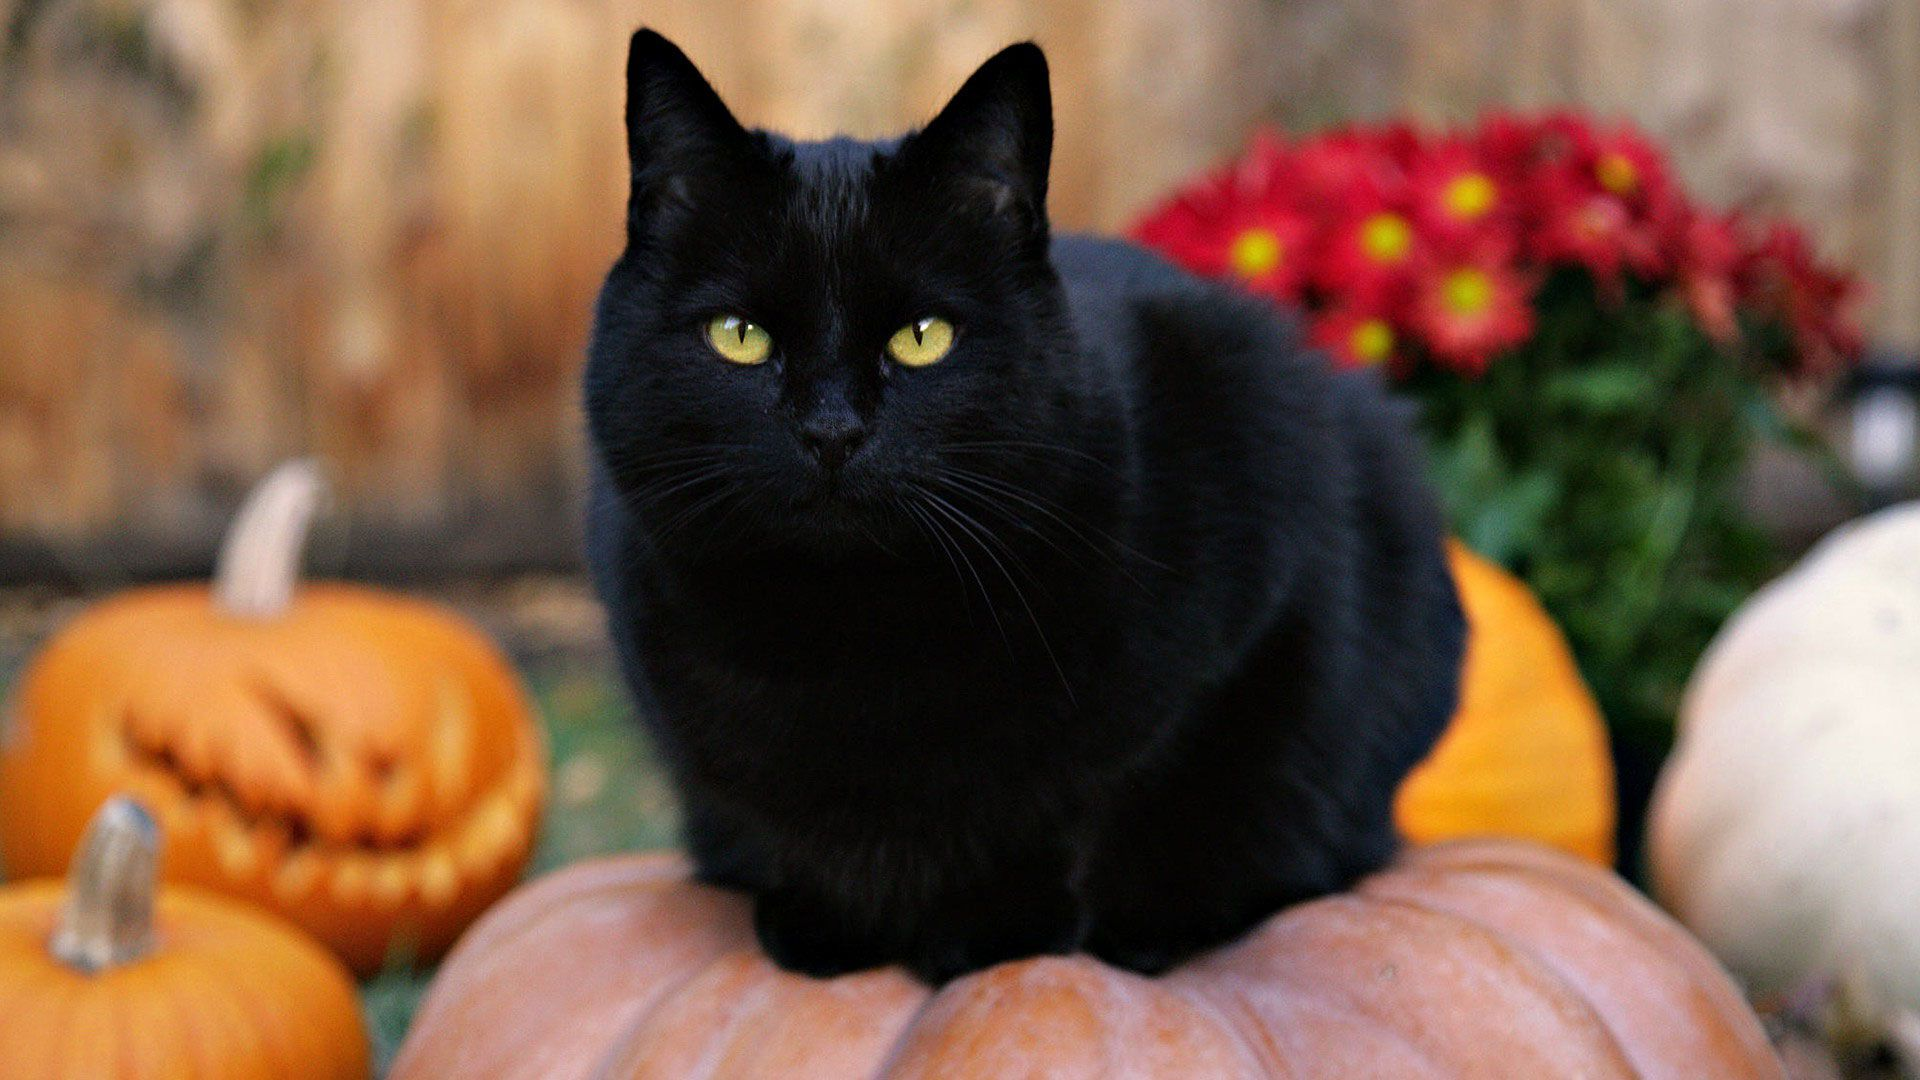 Most Black Cats Also Come With Golden Yellow Eyes Thanks To The High Melanin Pigment Content In Their Bodies Description Fro With Images Cat Wallpaper Black Cat Halloween